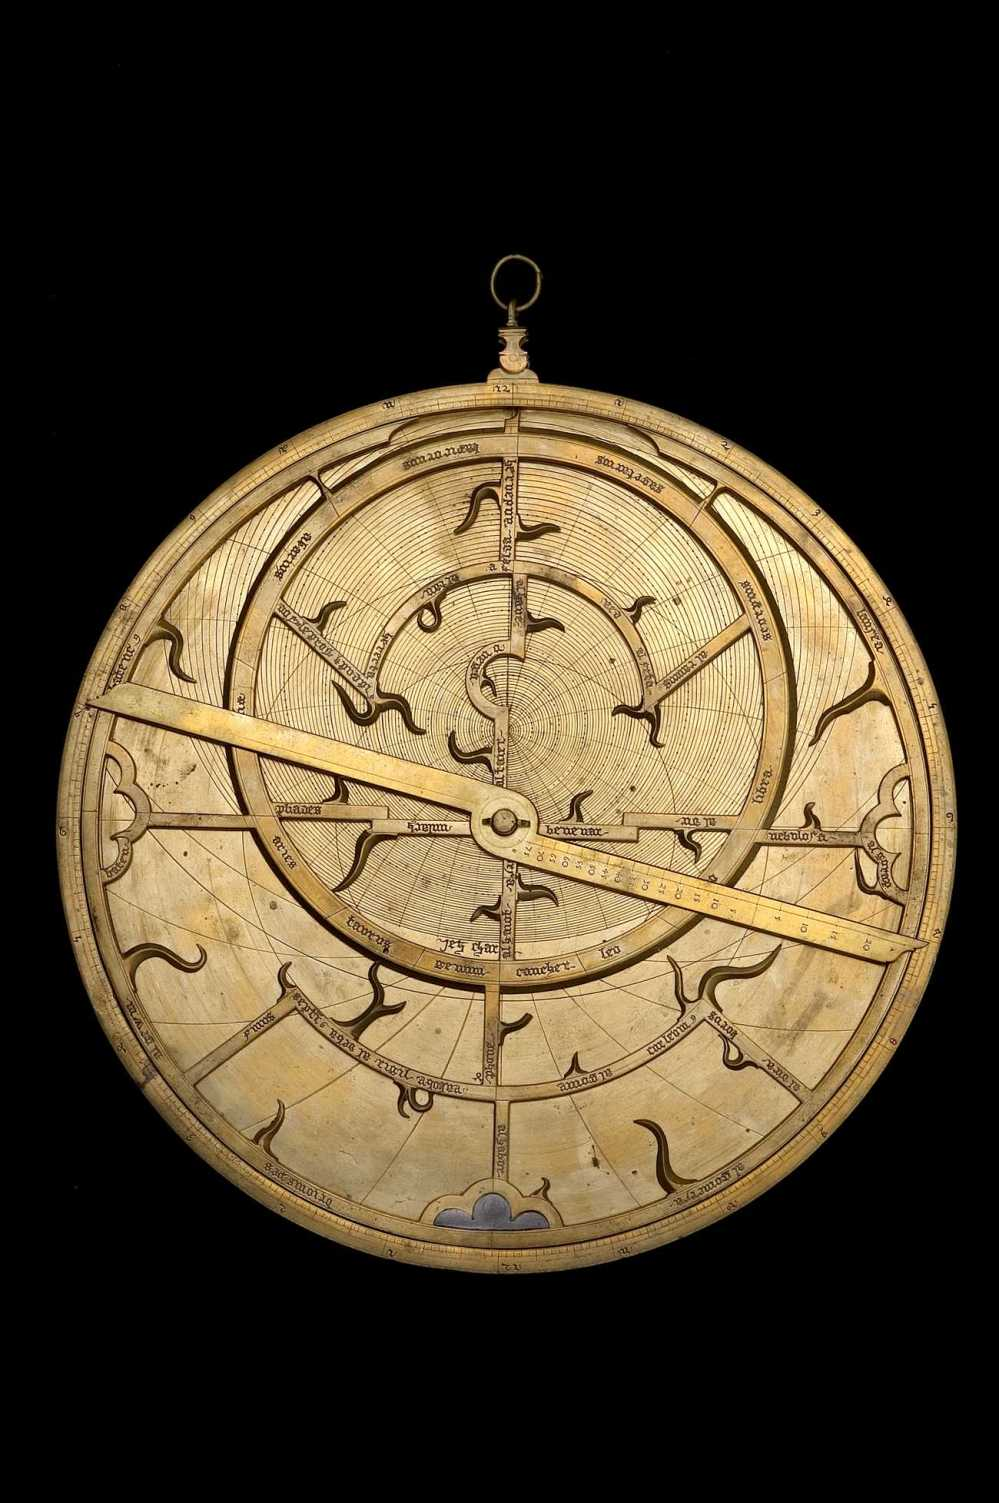 preview image for Late Gothic Astrolabe, French?, c. 1450